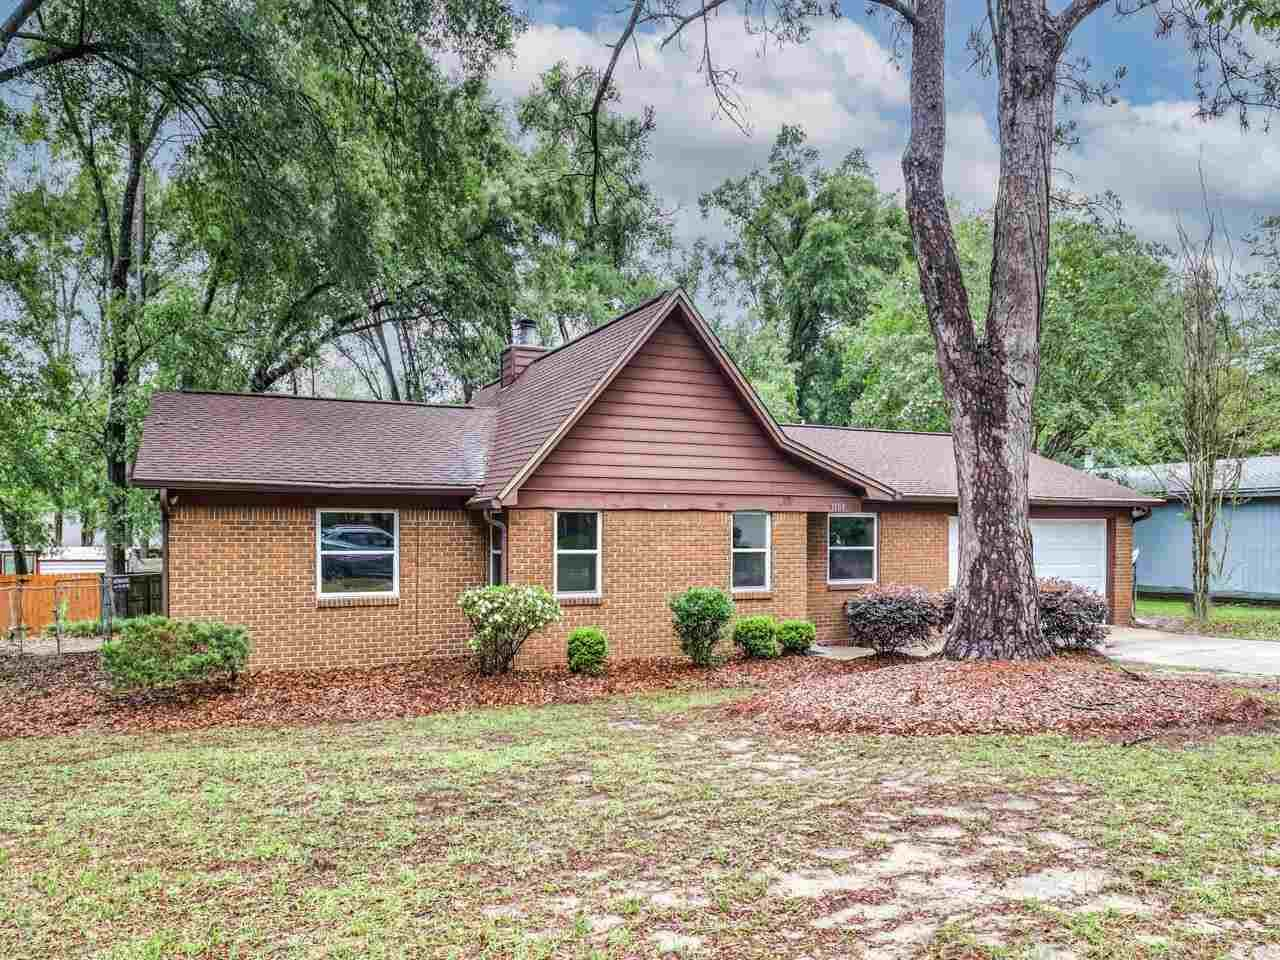 3108 Canmore Place, Tallahassee, FL 32303 - MLS#: 332308